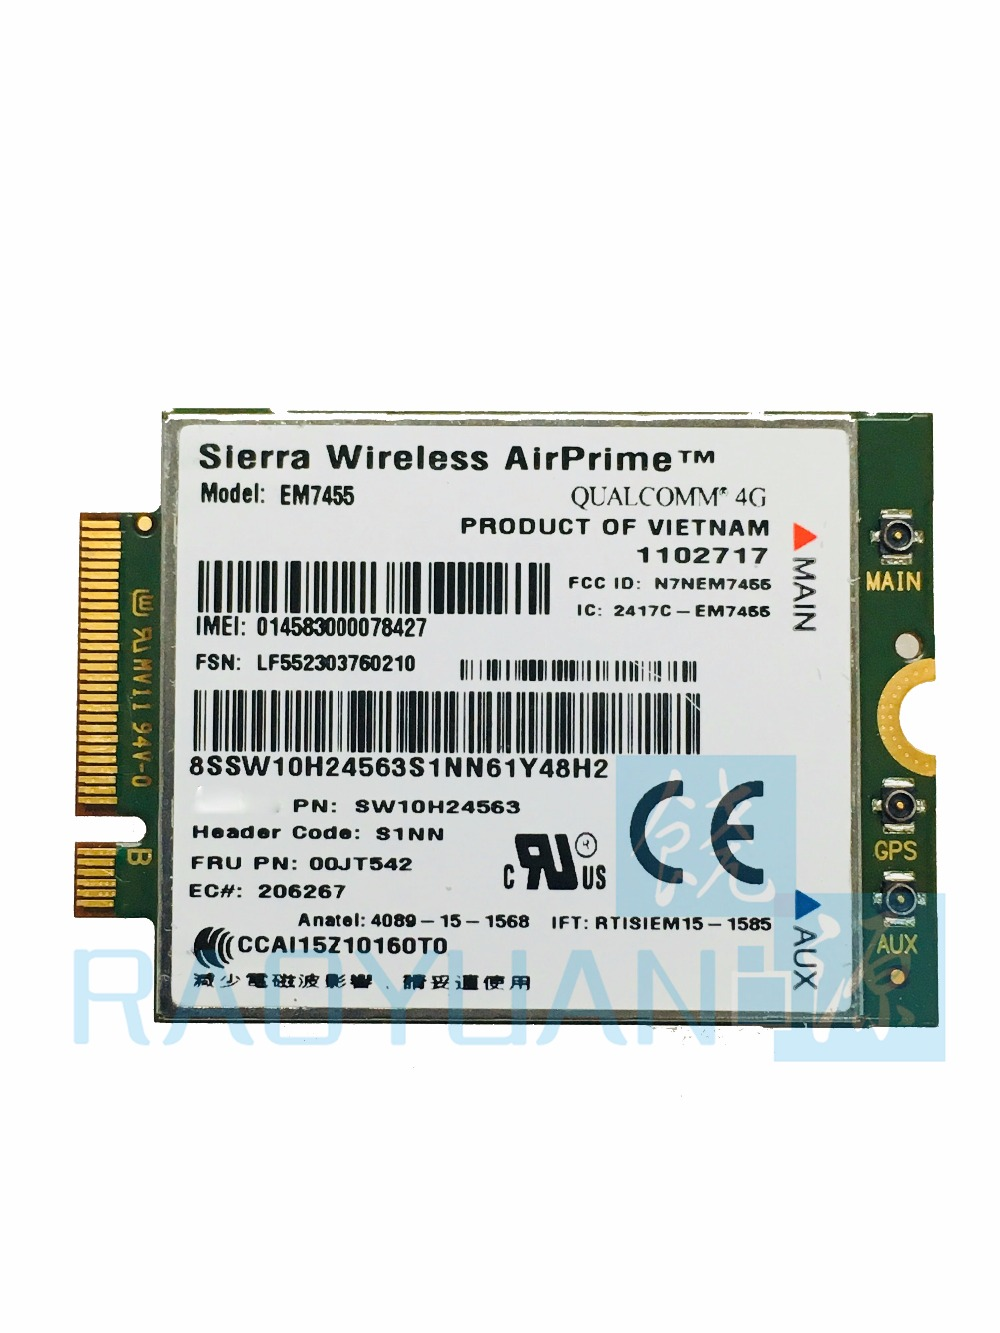 4G LTE WWAN CARD for Sierra Wireless Airprime EM7455 GOBI6000 QUALCOMM FRU:00JT542 For Lenovo X260 T460 P50 P70 L560 X1+Antenna купить в Москве 2019